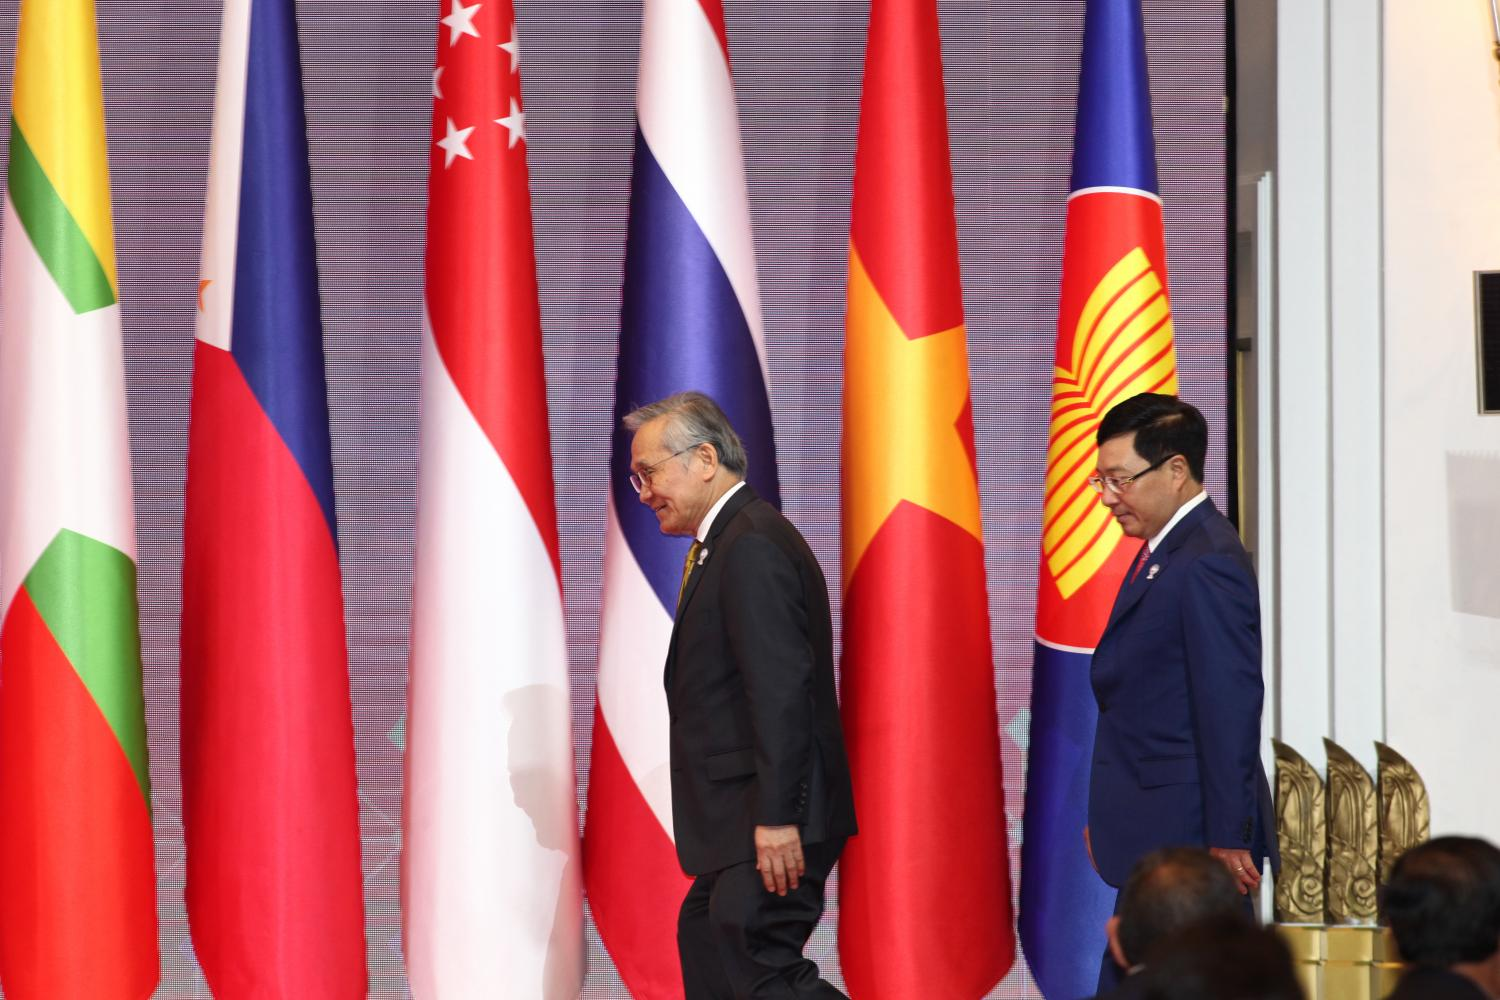 Vietnamese Minister of Foreign Affairs Pham Binh Minh and his Thai counterpart. Photo: Bangkokpost